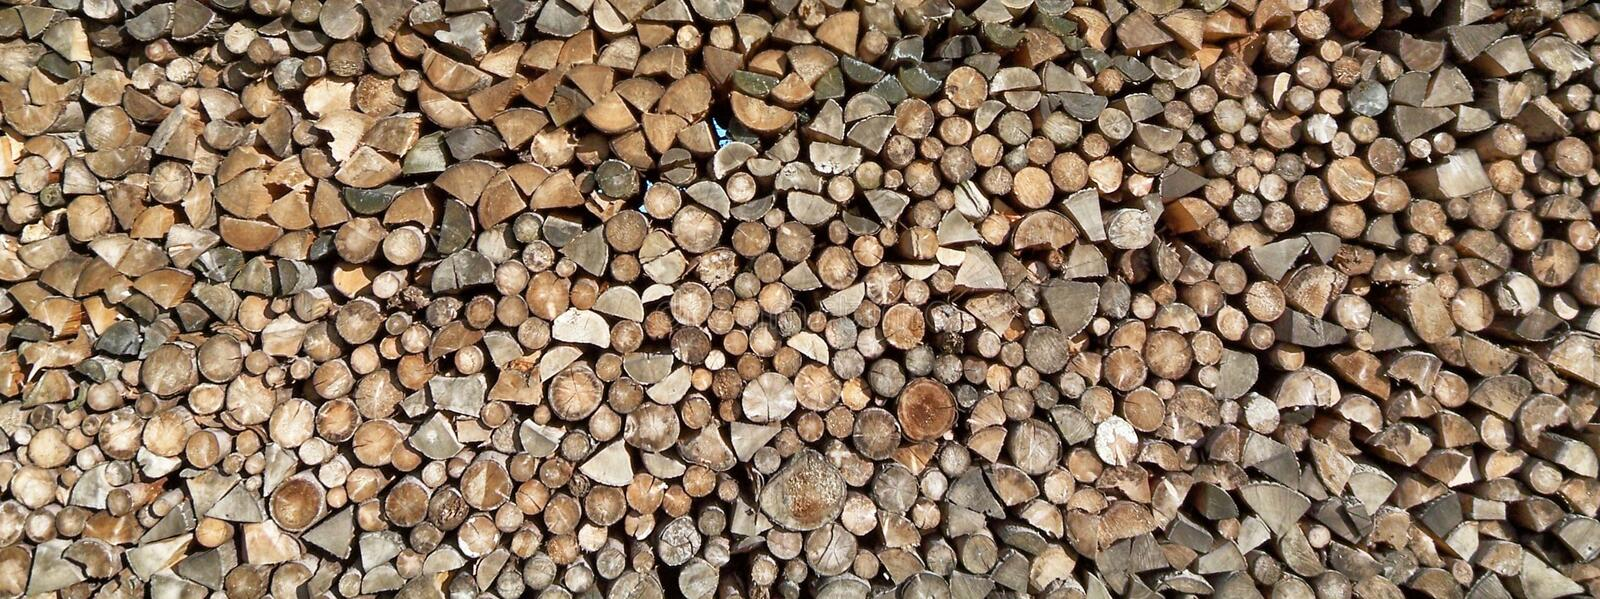 firewood images stock